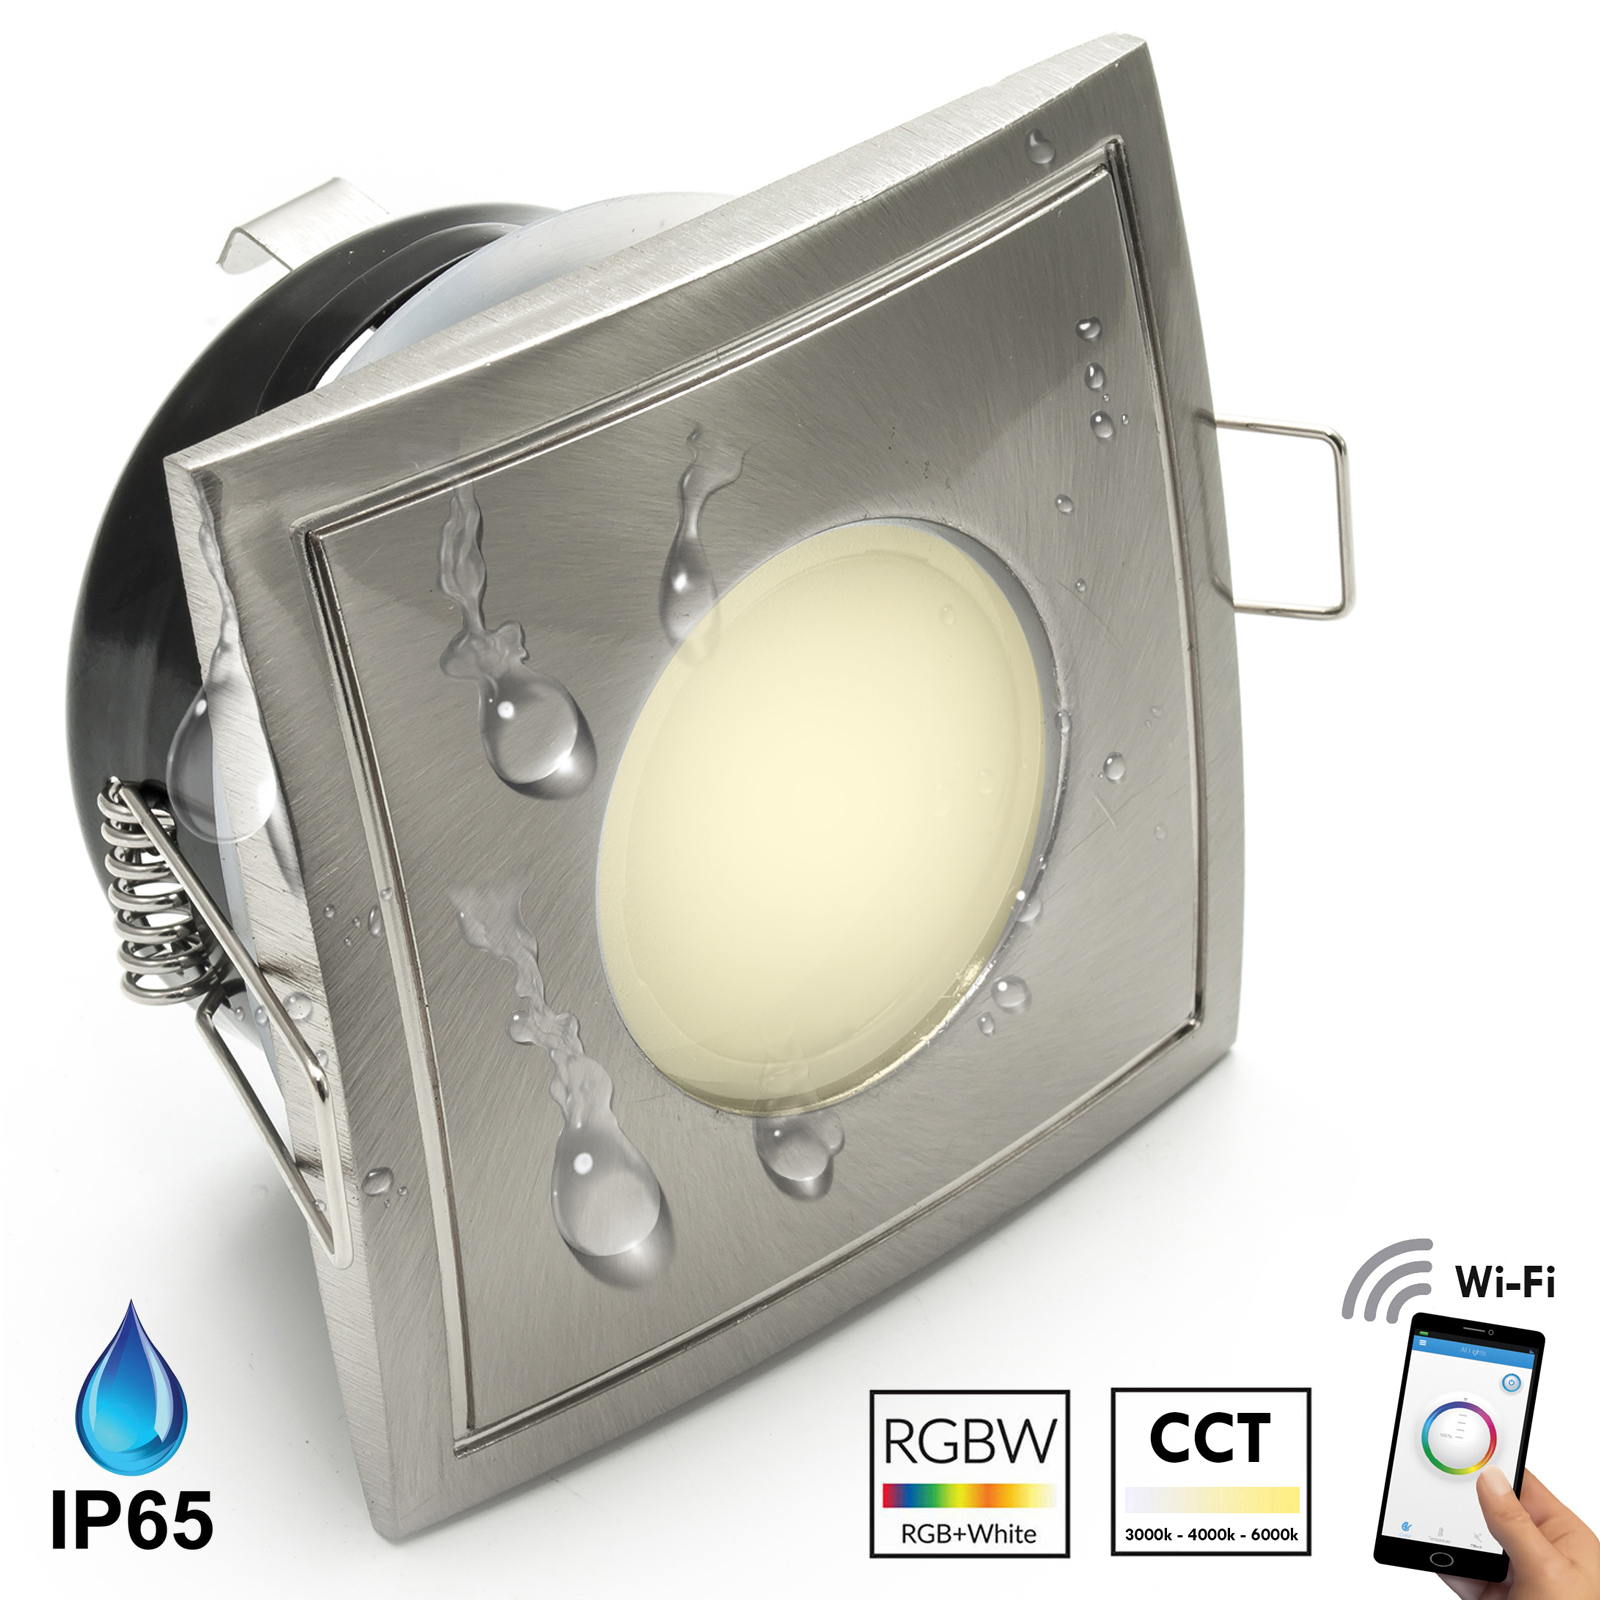 Spotlight LED recessed square 7cm WiFi light multi-color RGB, CCT bathroom shower IP65